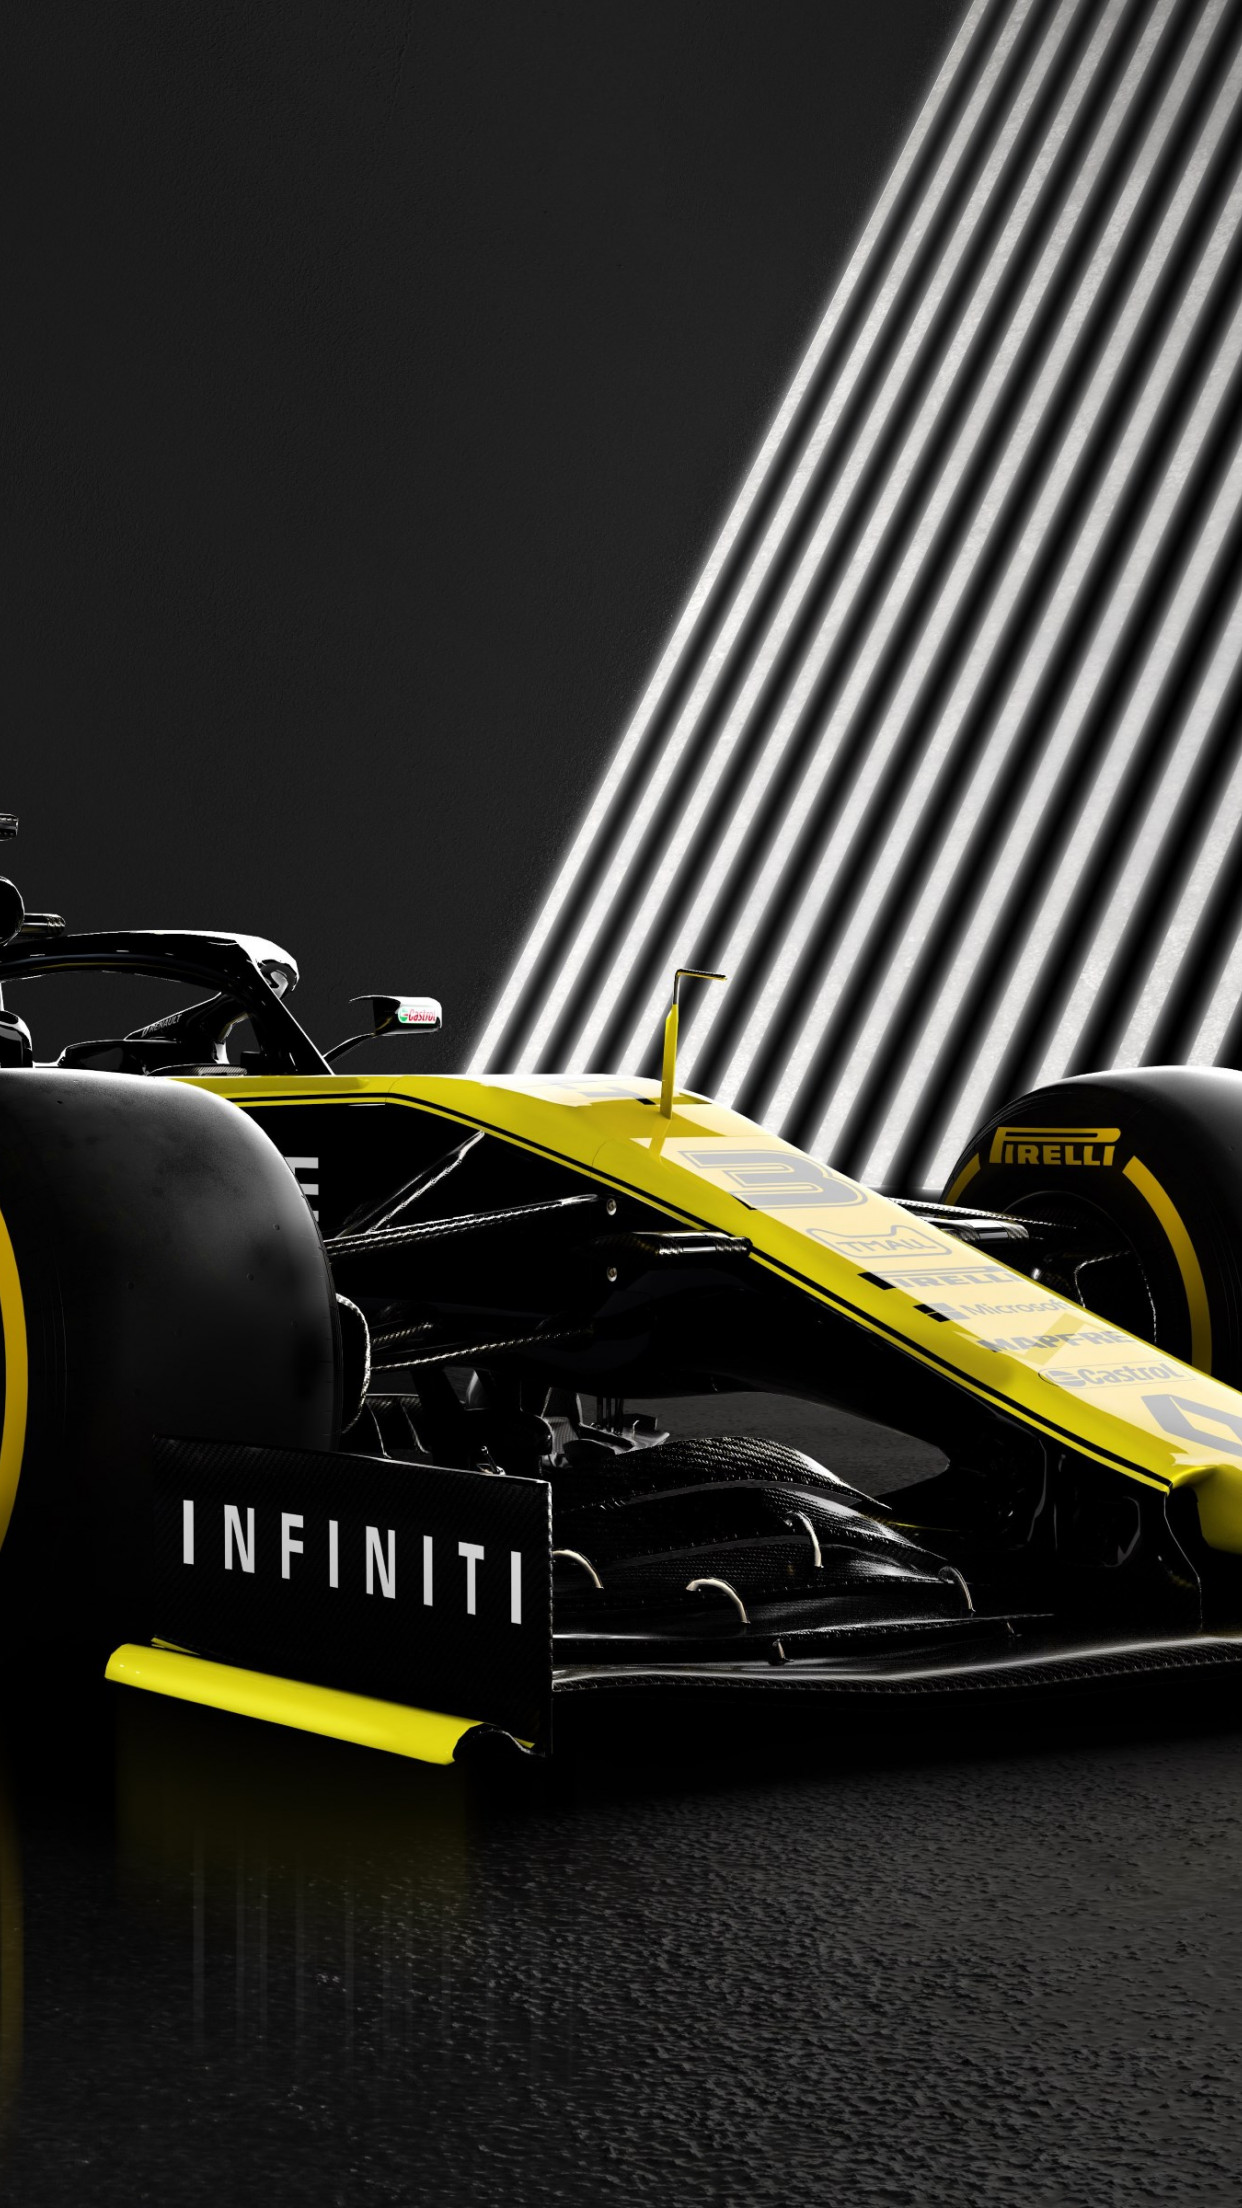 Download wallpaper Renault F1 RS19 1242x2208 1242x2208